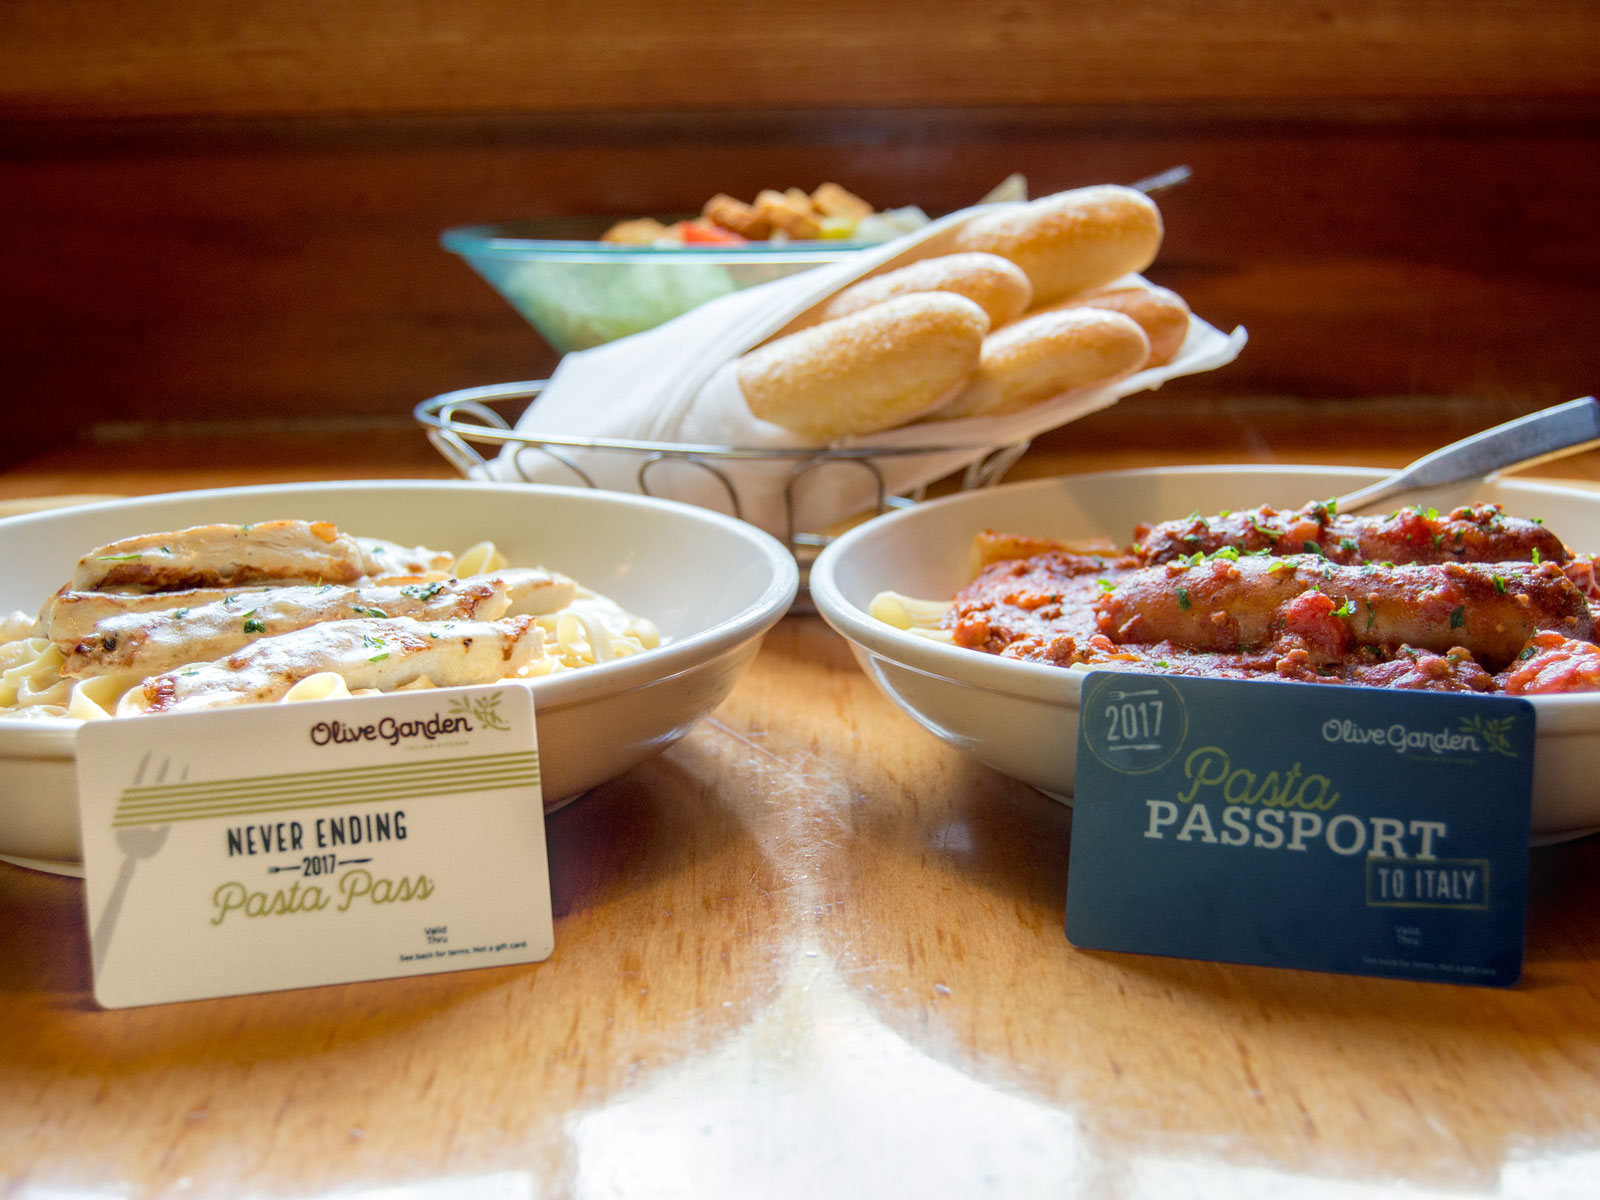 How to Score Olive Garden's Never Ending Pasta Pass and Get an All-Inclusive Trip to Italy